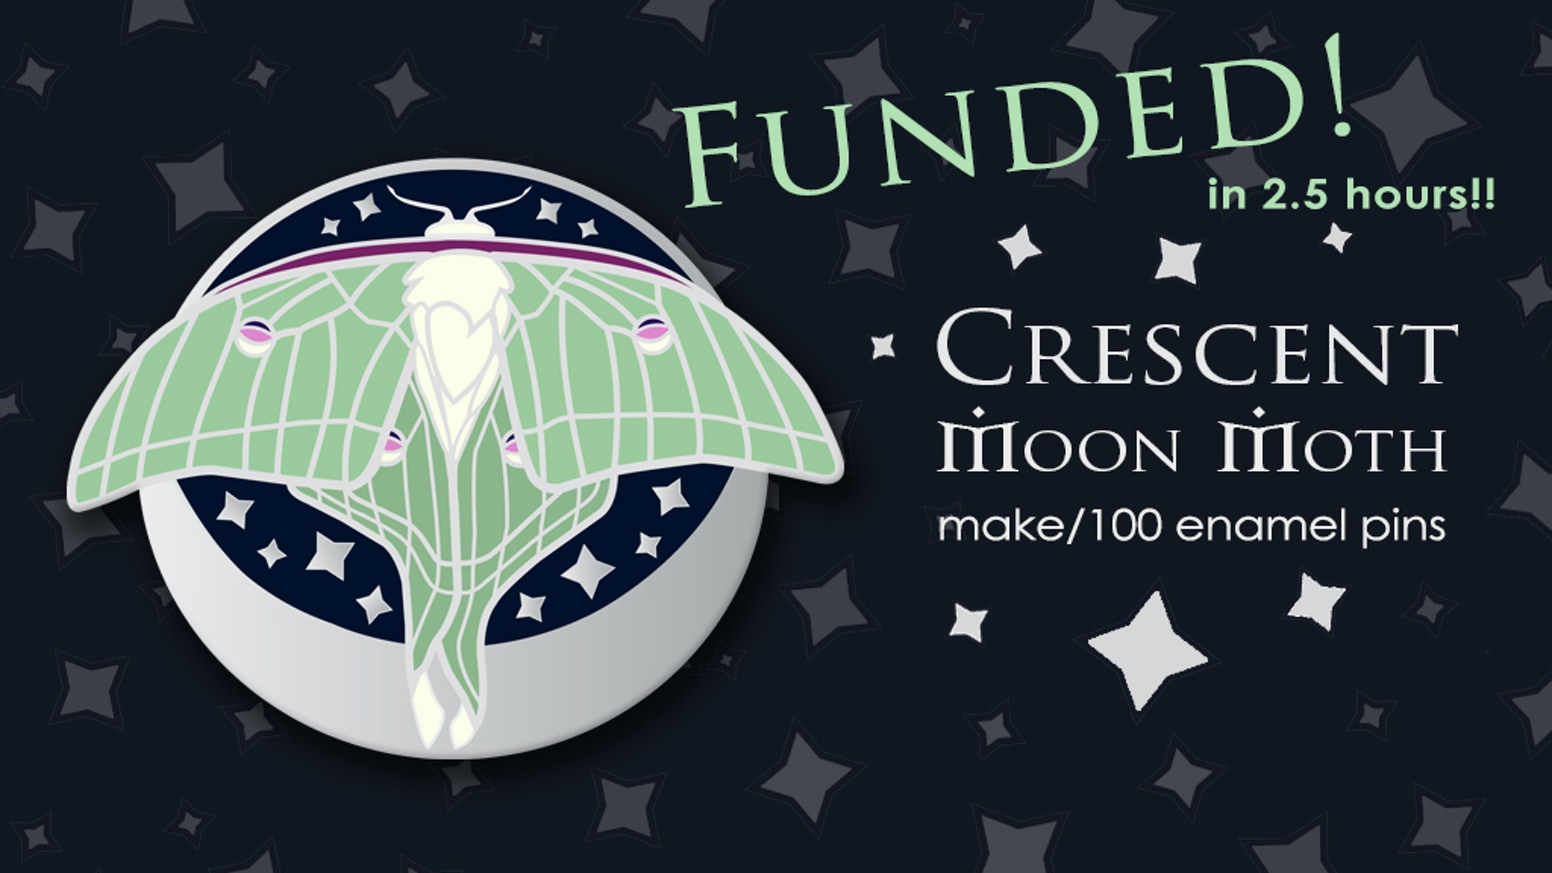 The Crescent Moon Moth is a limited edition hard enamel pin inspired by my love of nature and magic.